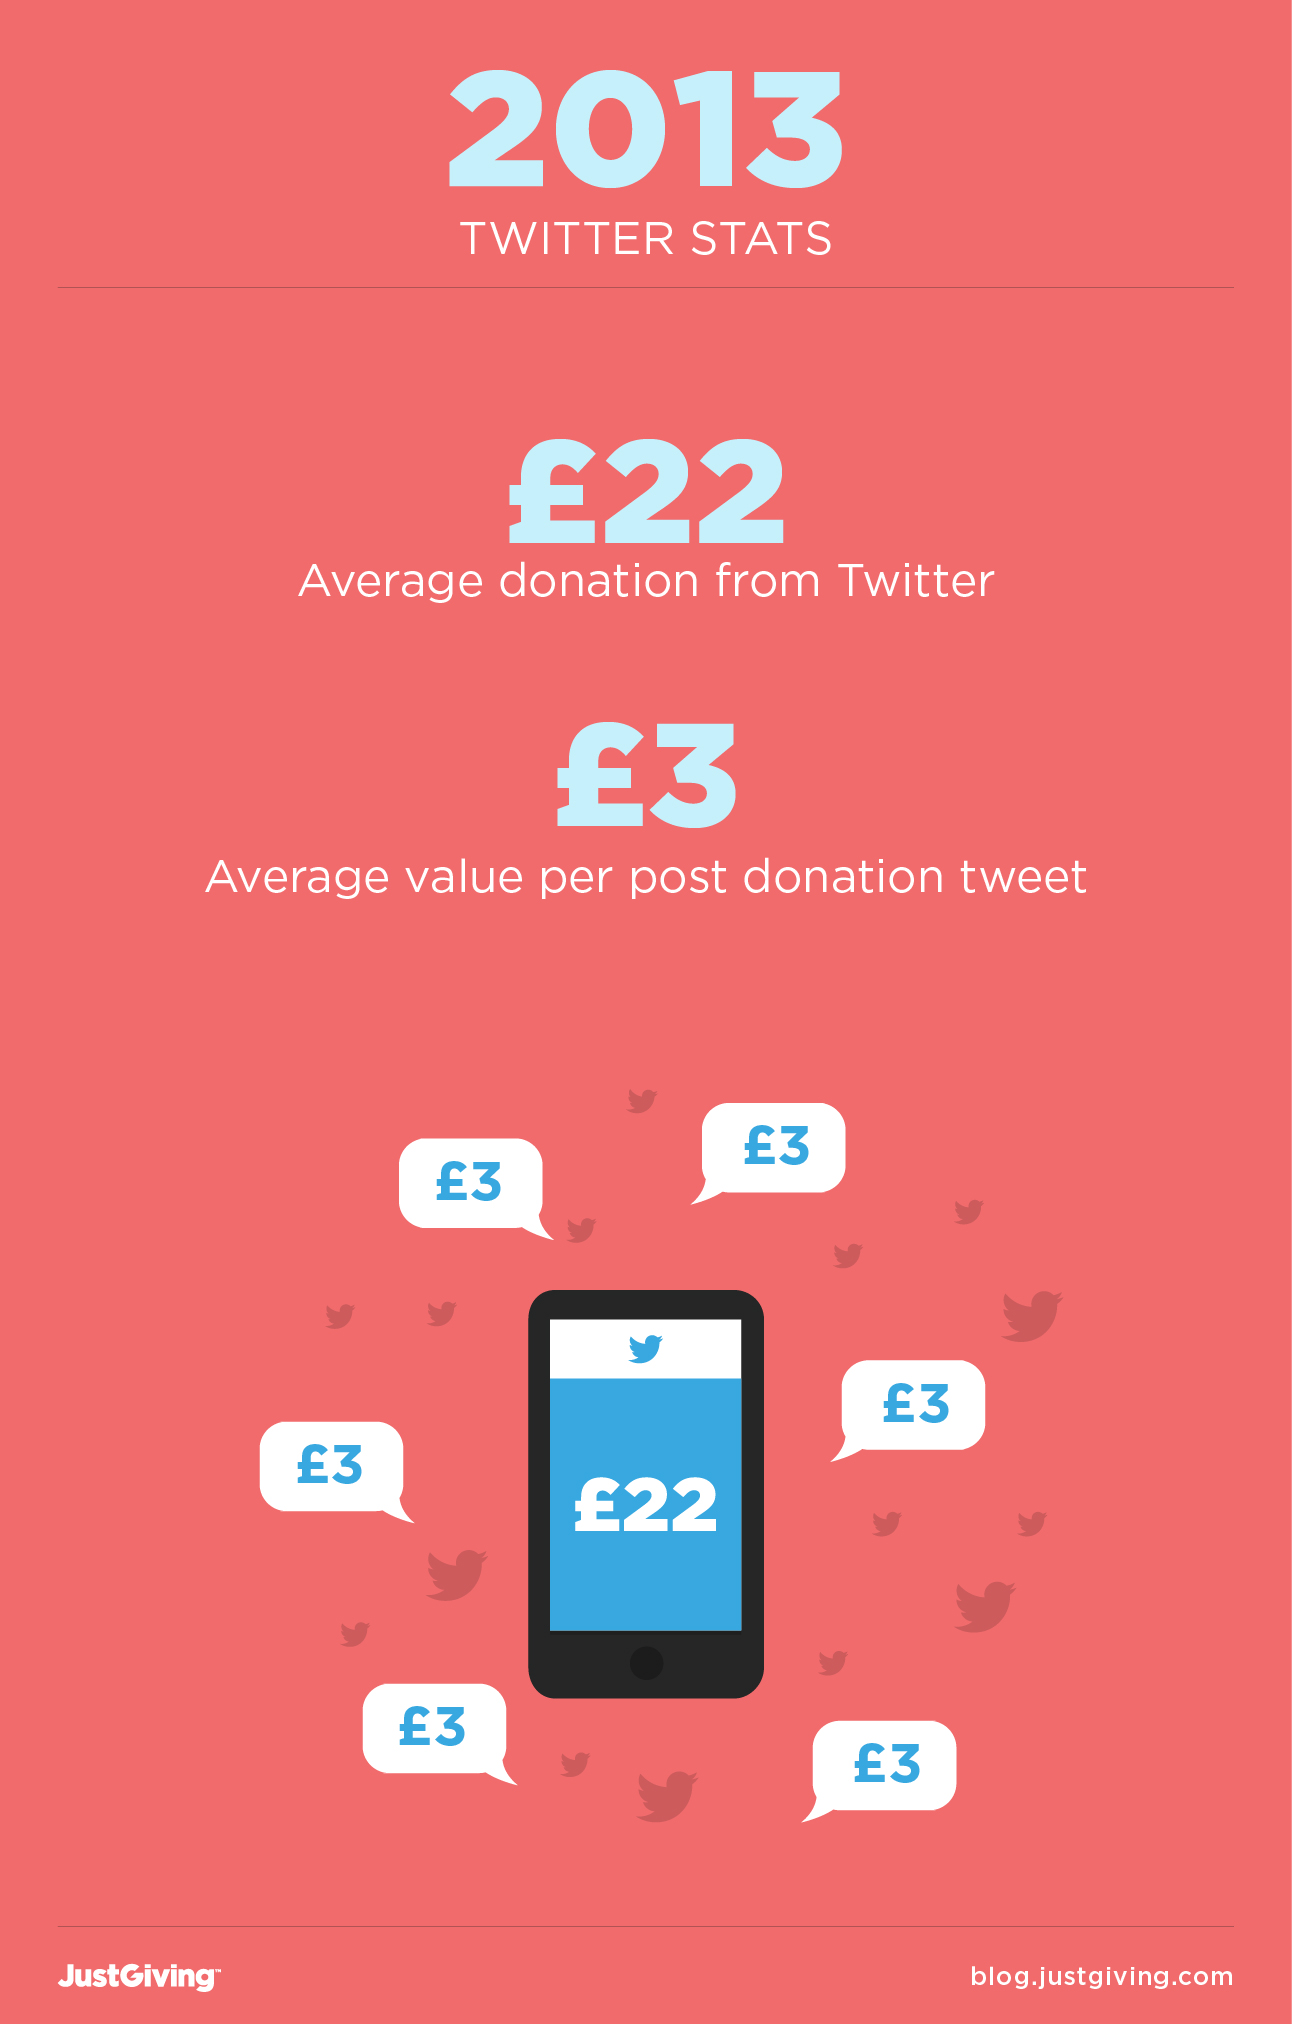 Average donation from Twitter is £22